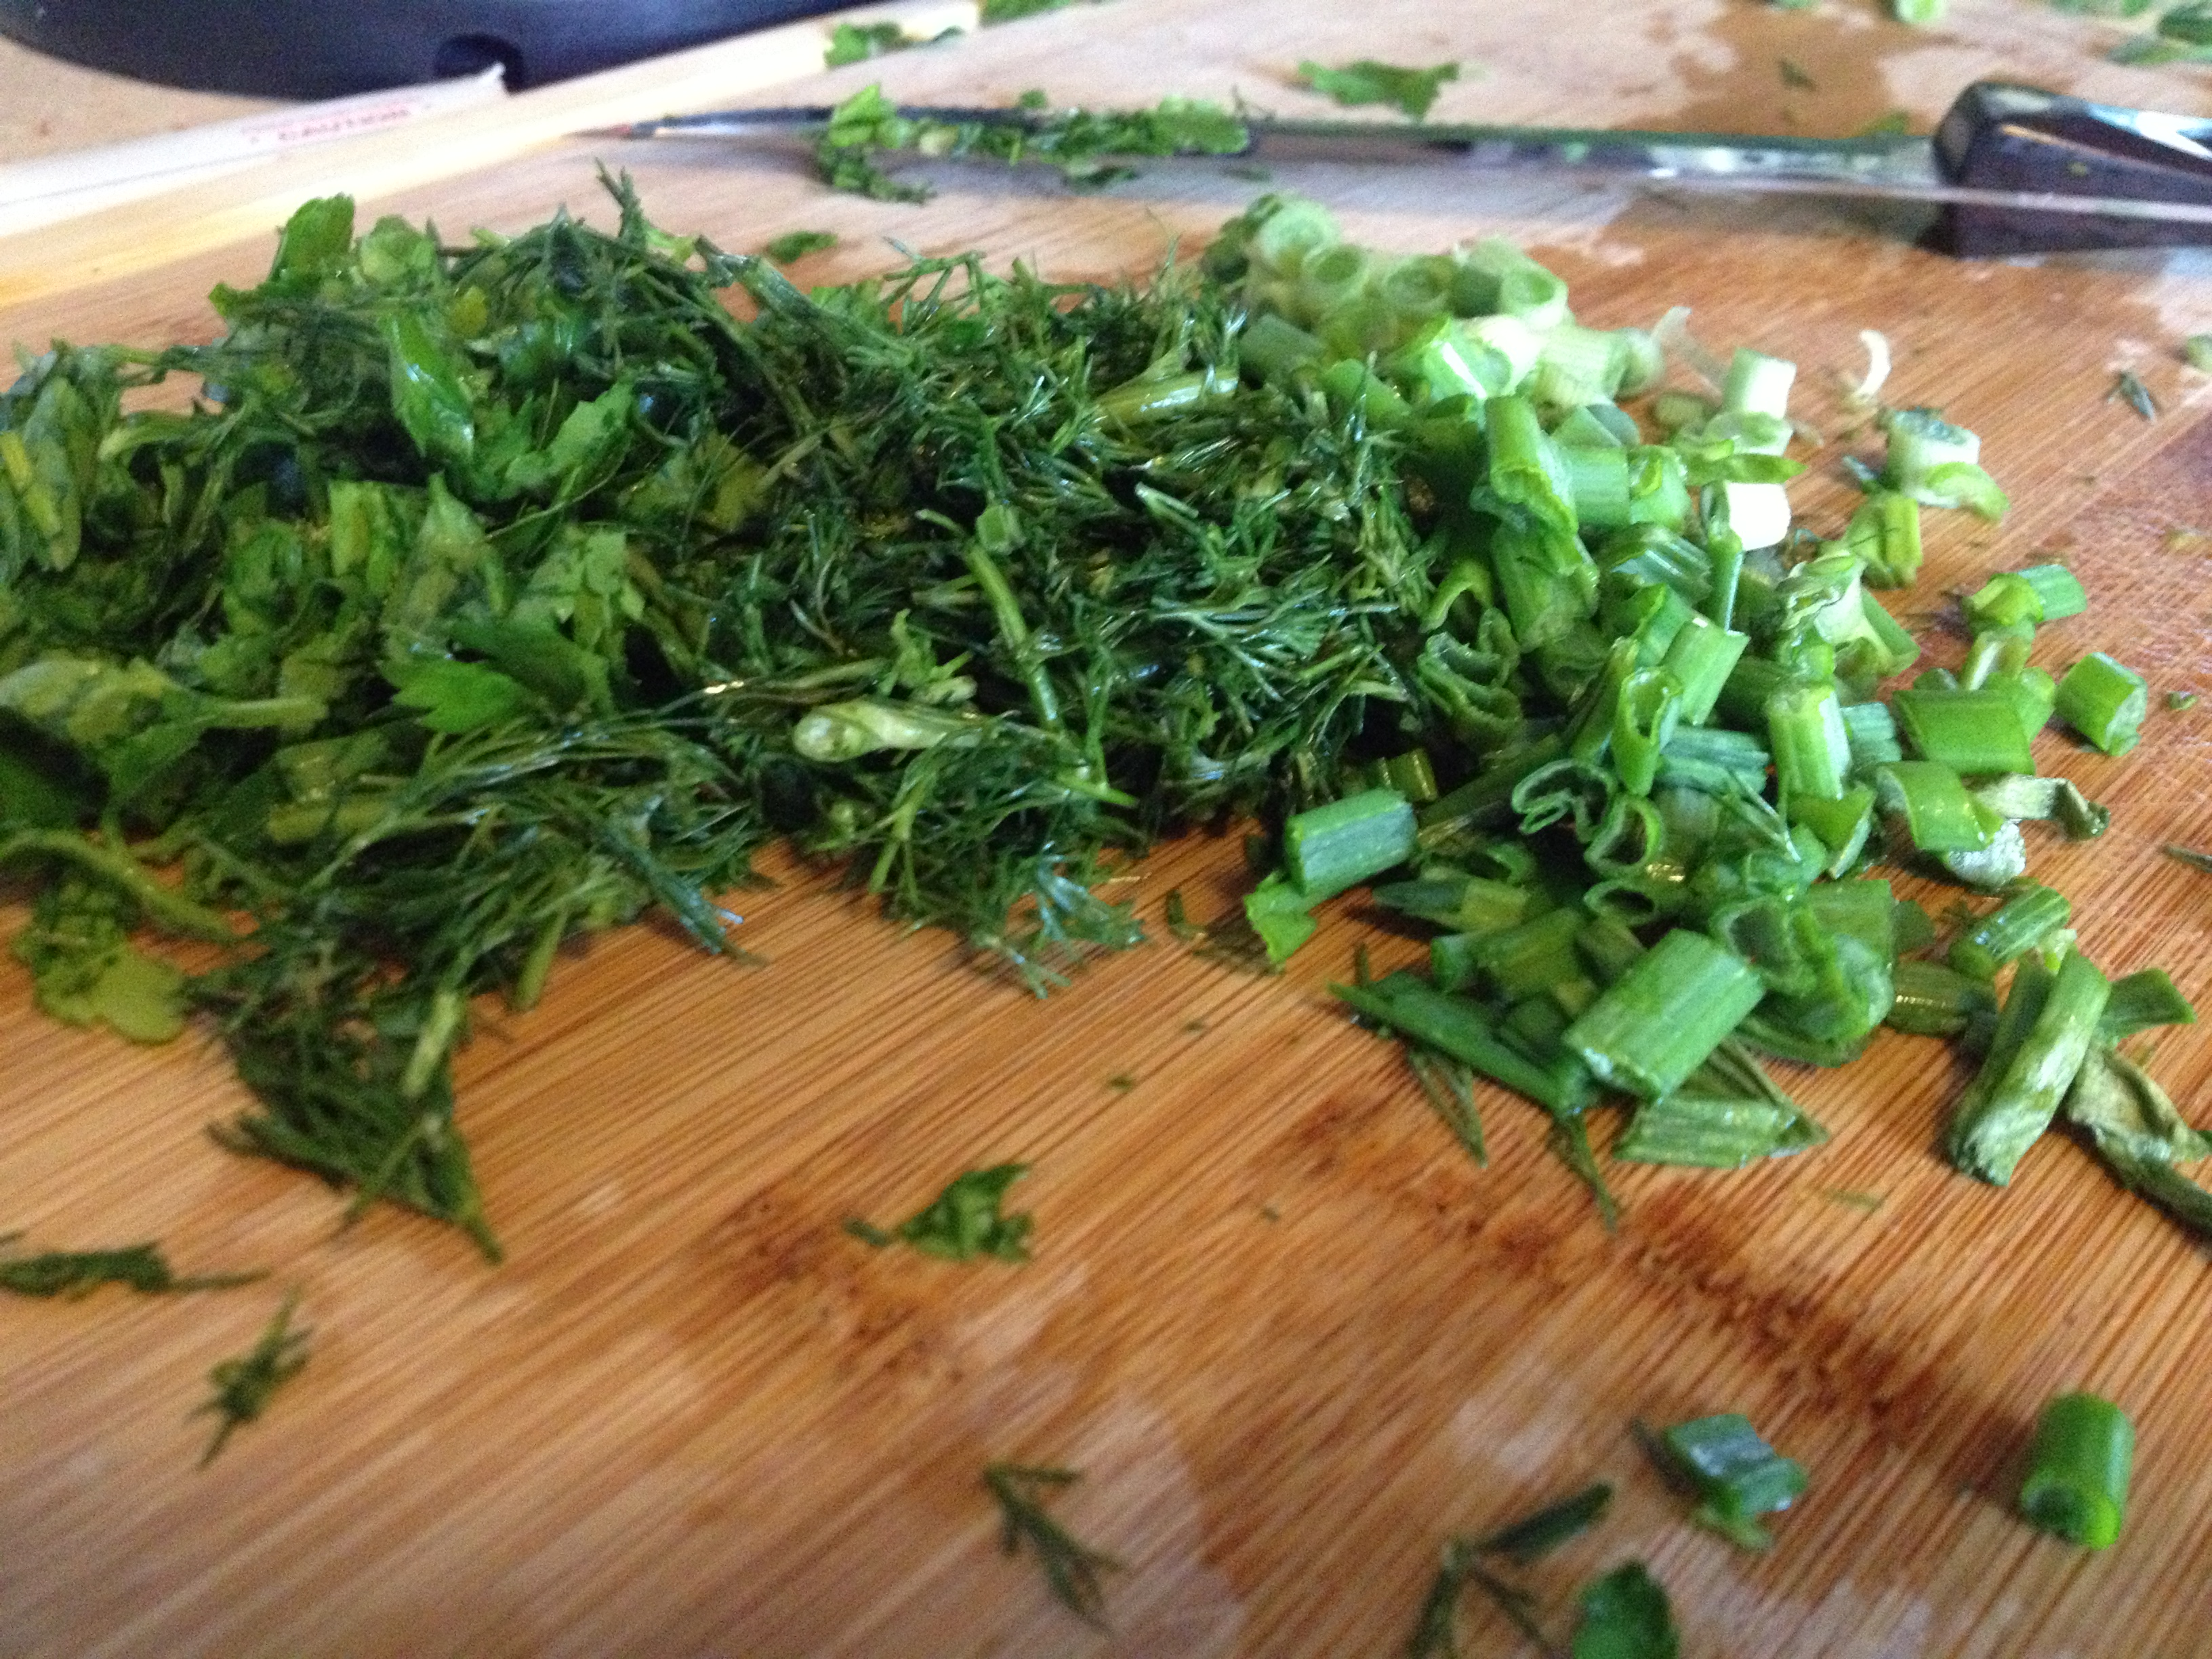 Beautiful chopped herbs/veggies